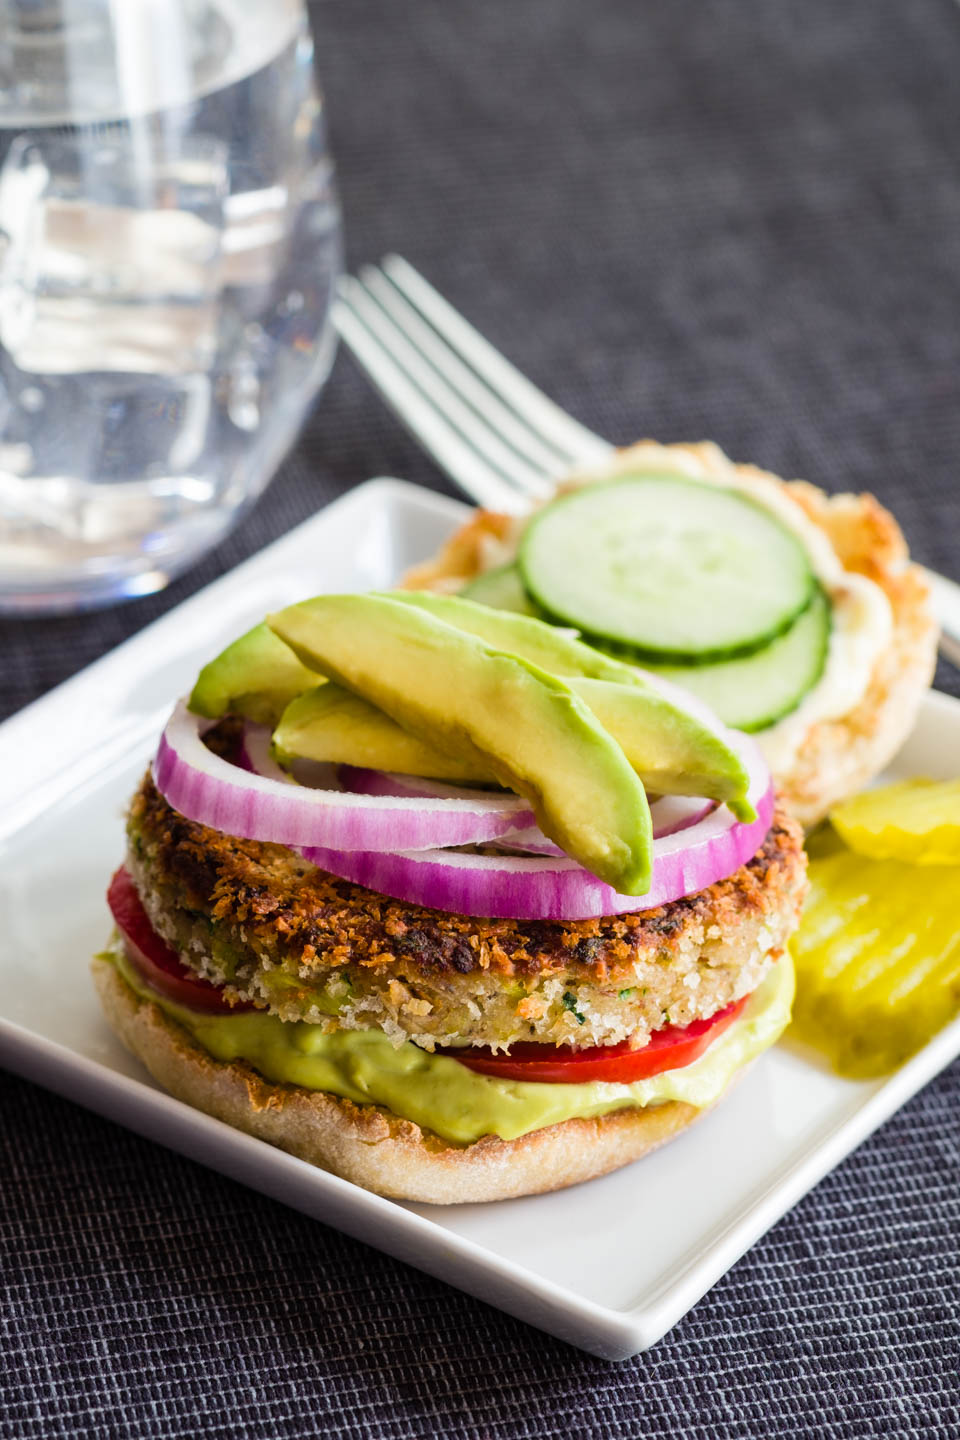 Zucchini Garden Burgers With Avocado Aioli